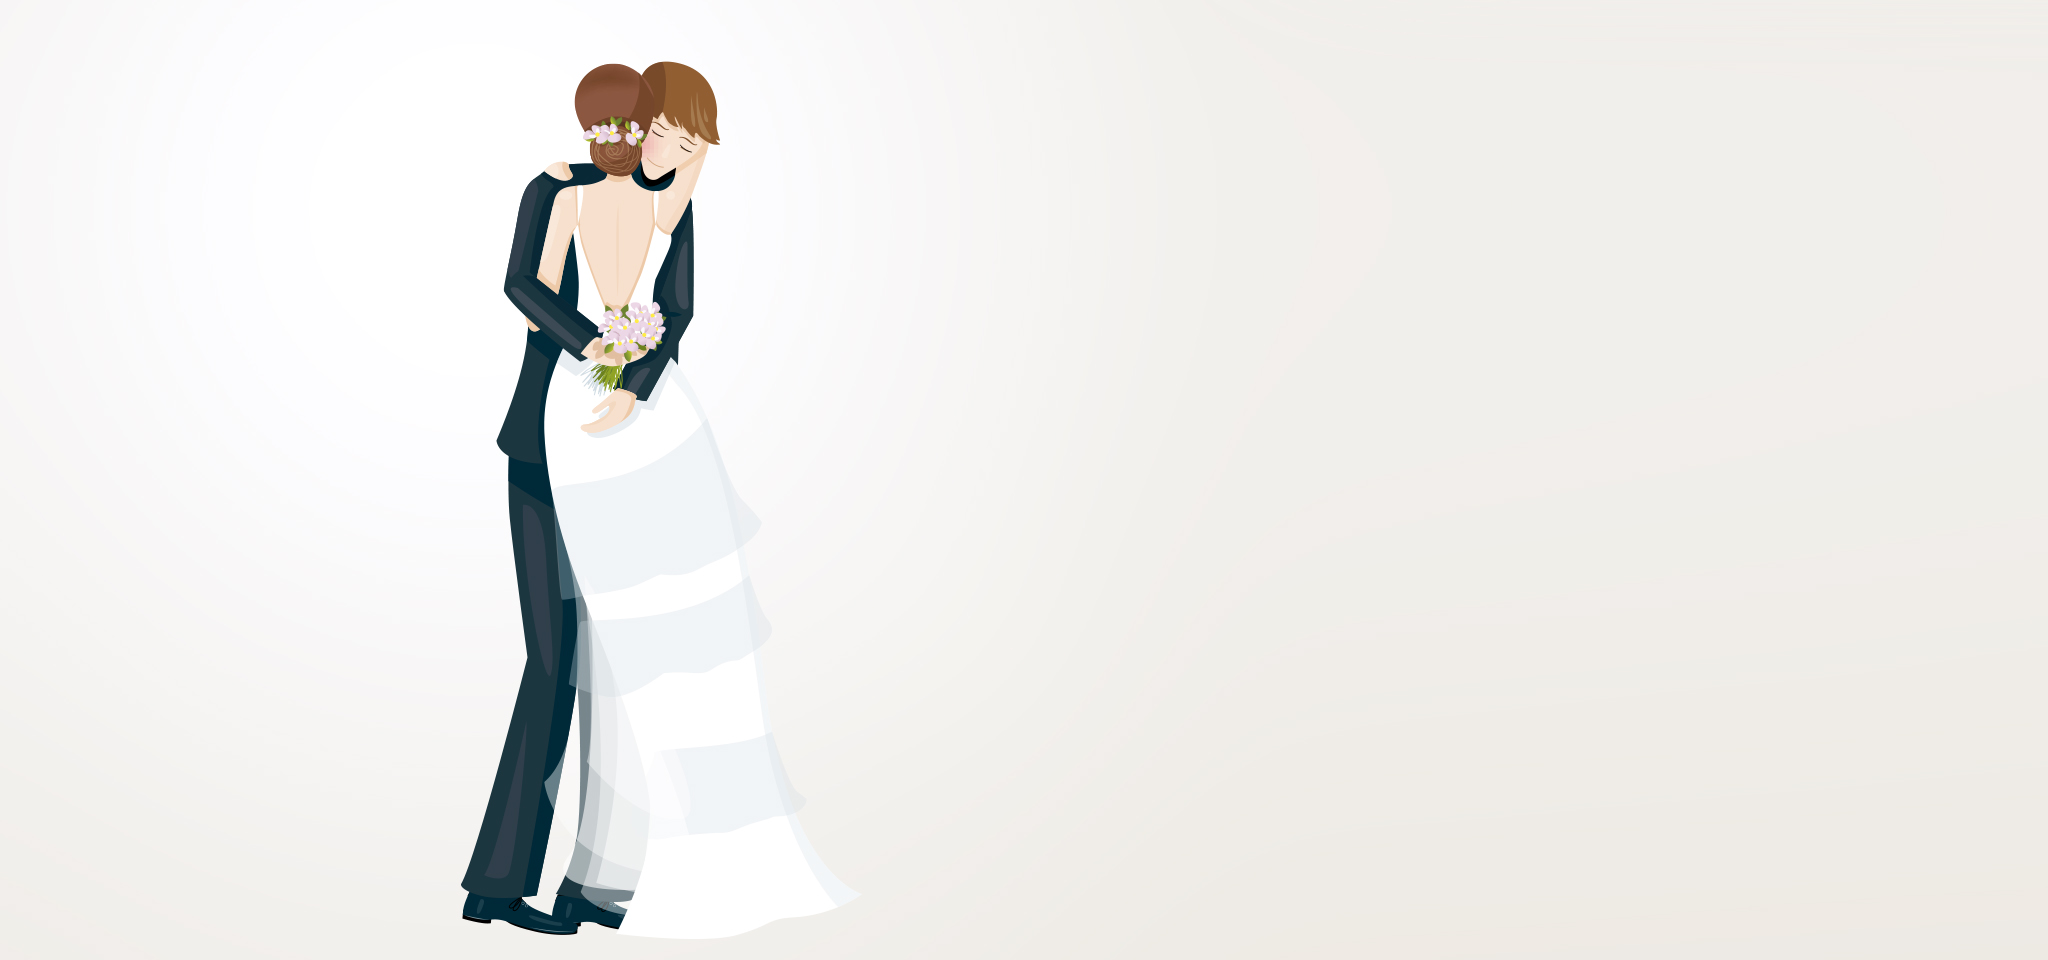 Illustration faire-part de mariage couple